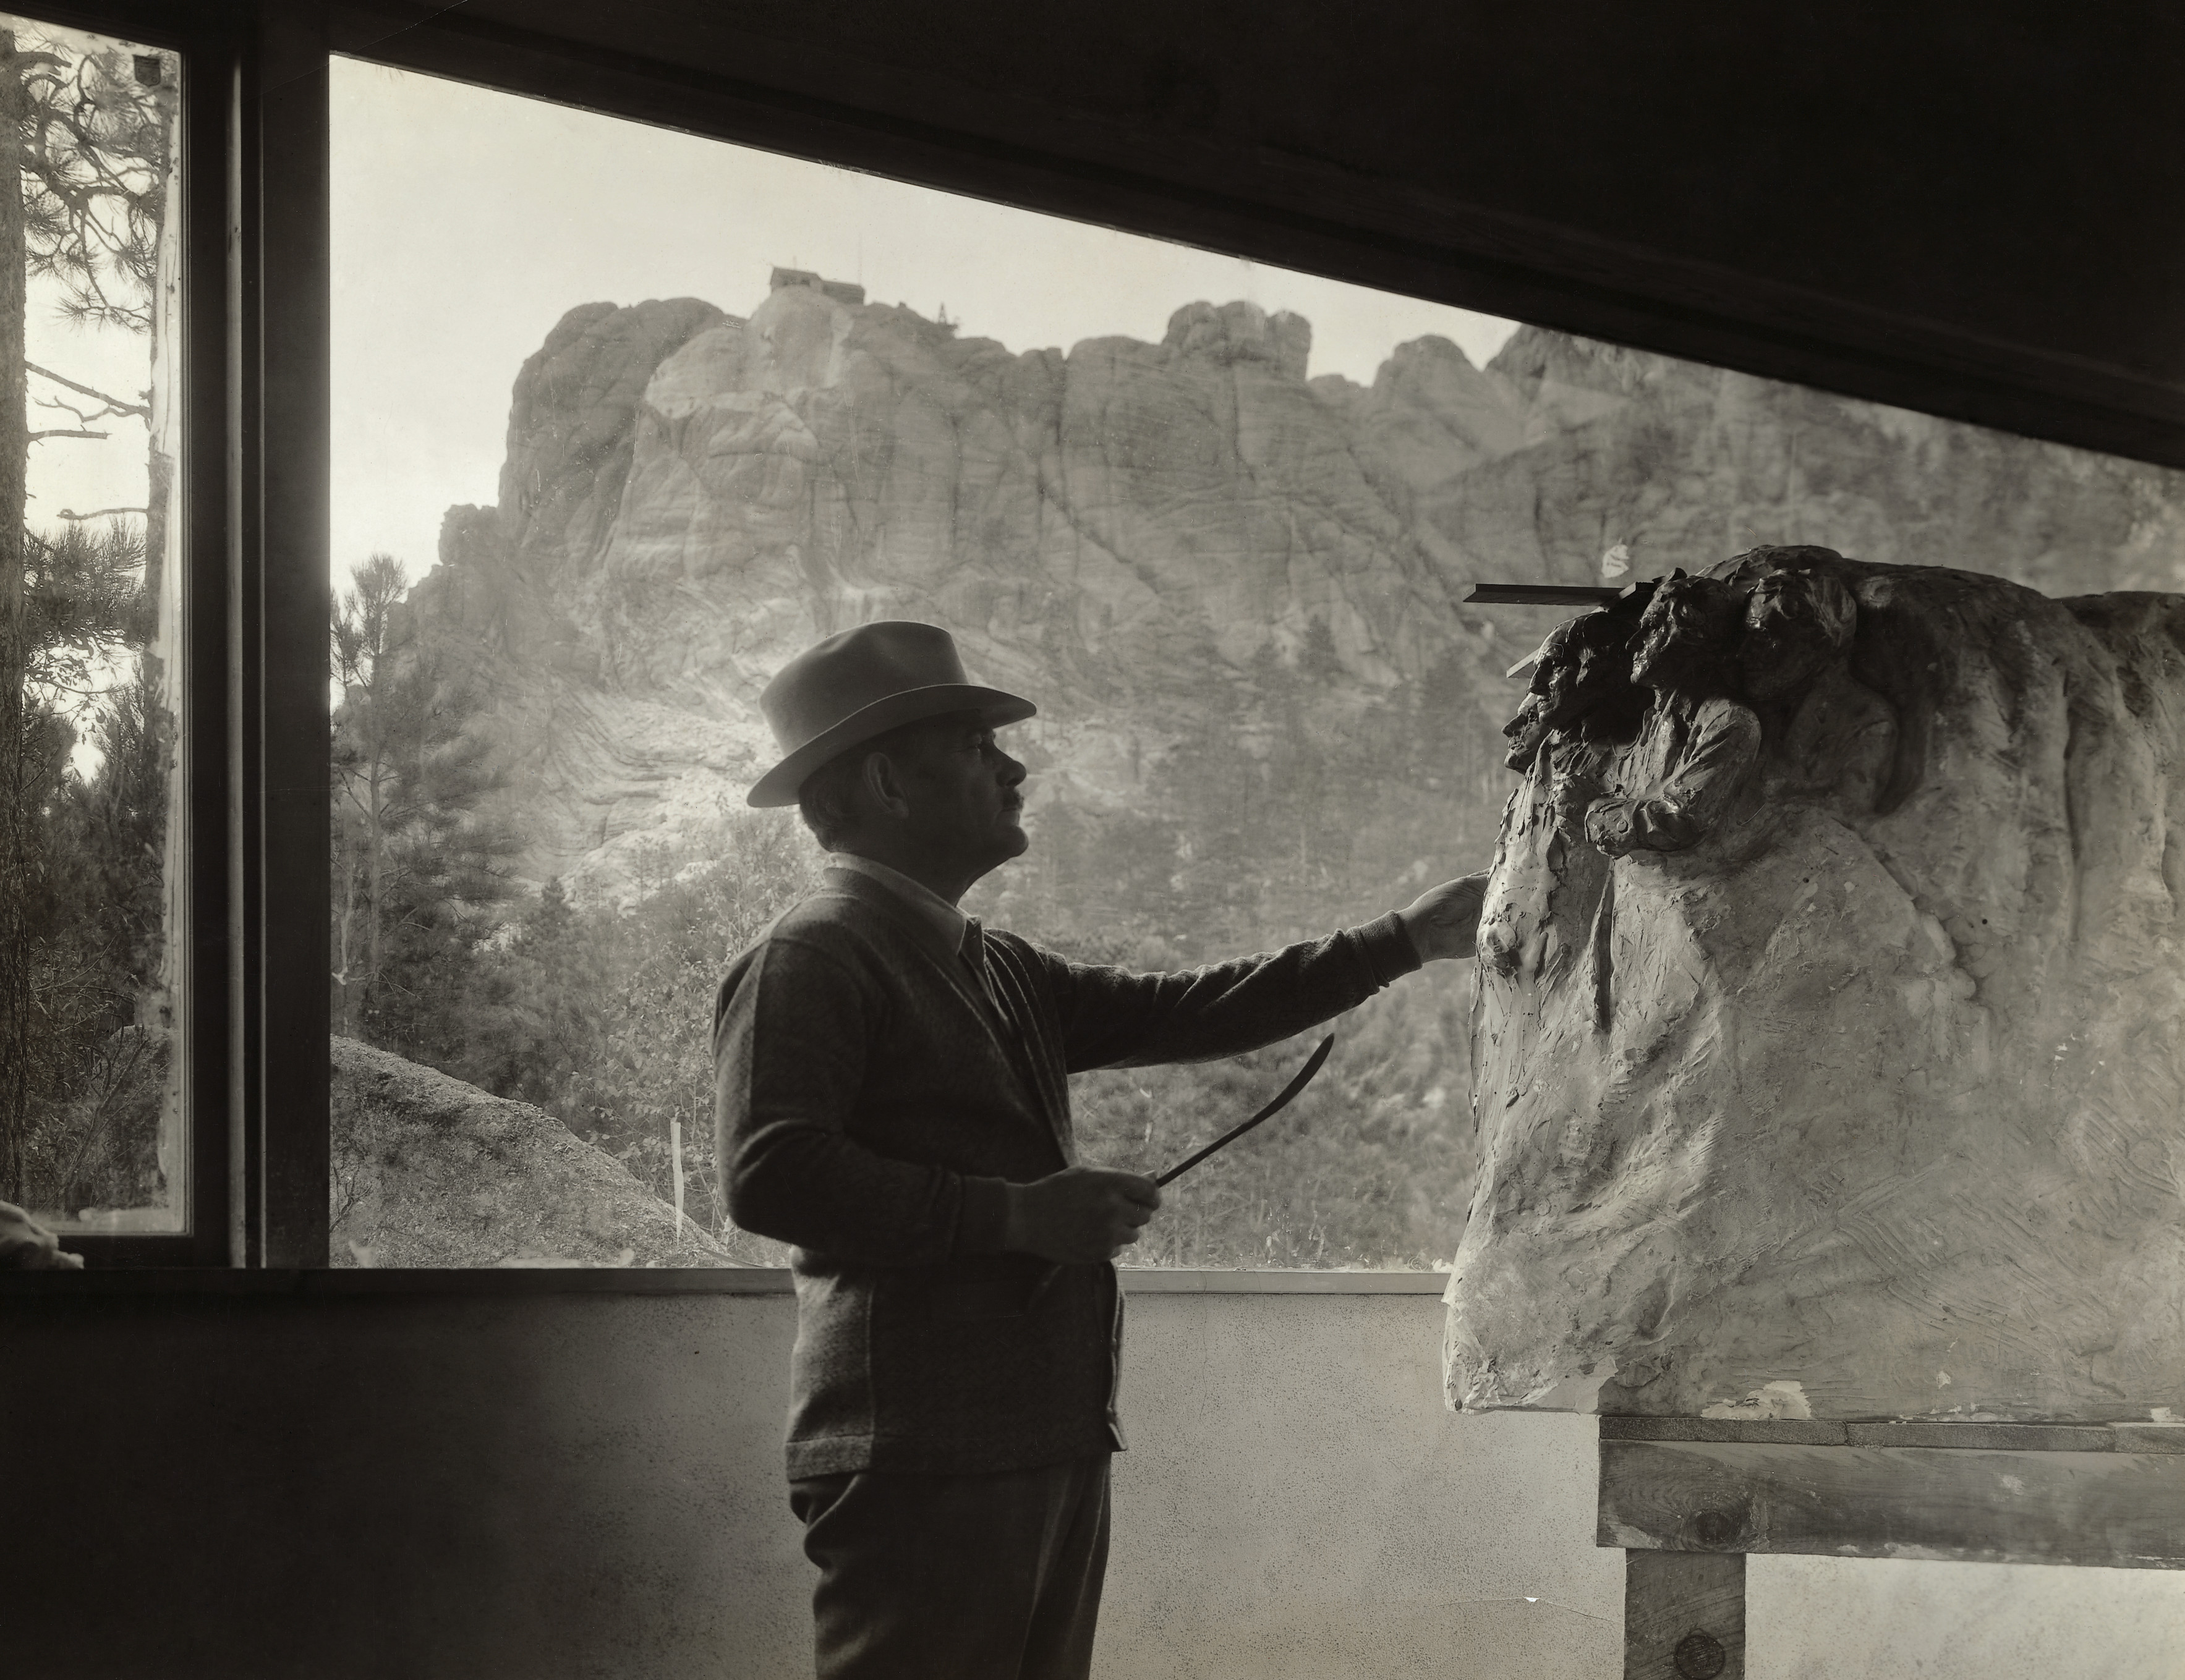 Gutzon Borglum, American sculptor, at work on the model for Mount Rushmore in his studio near the Black Hills area of Keystone, S.D. circa 1930s.